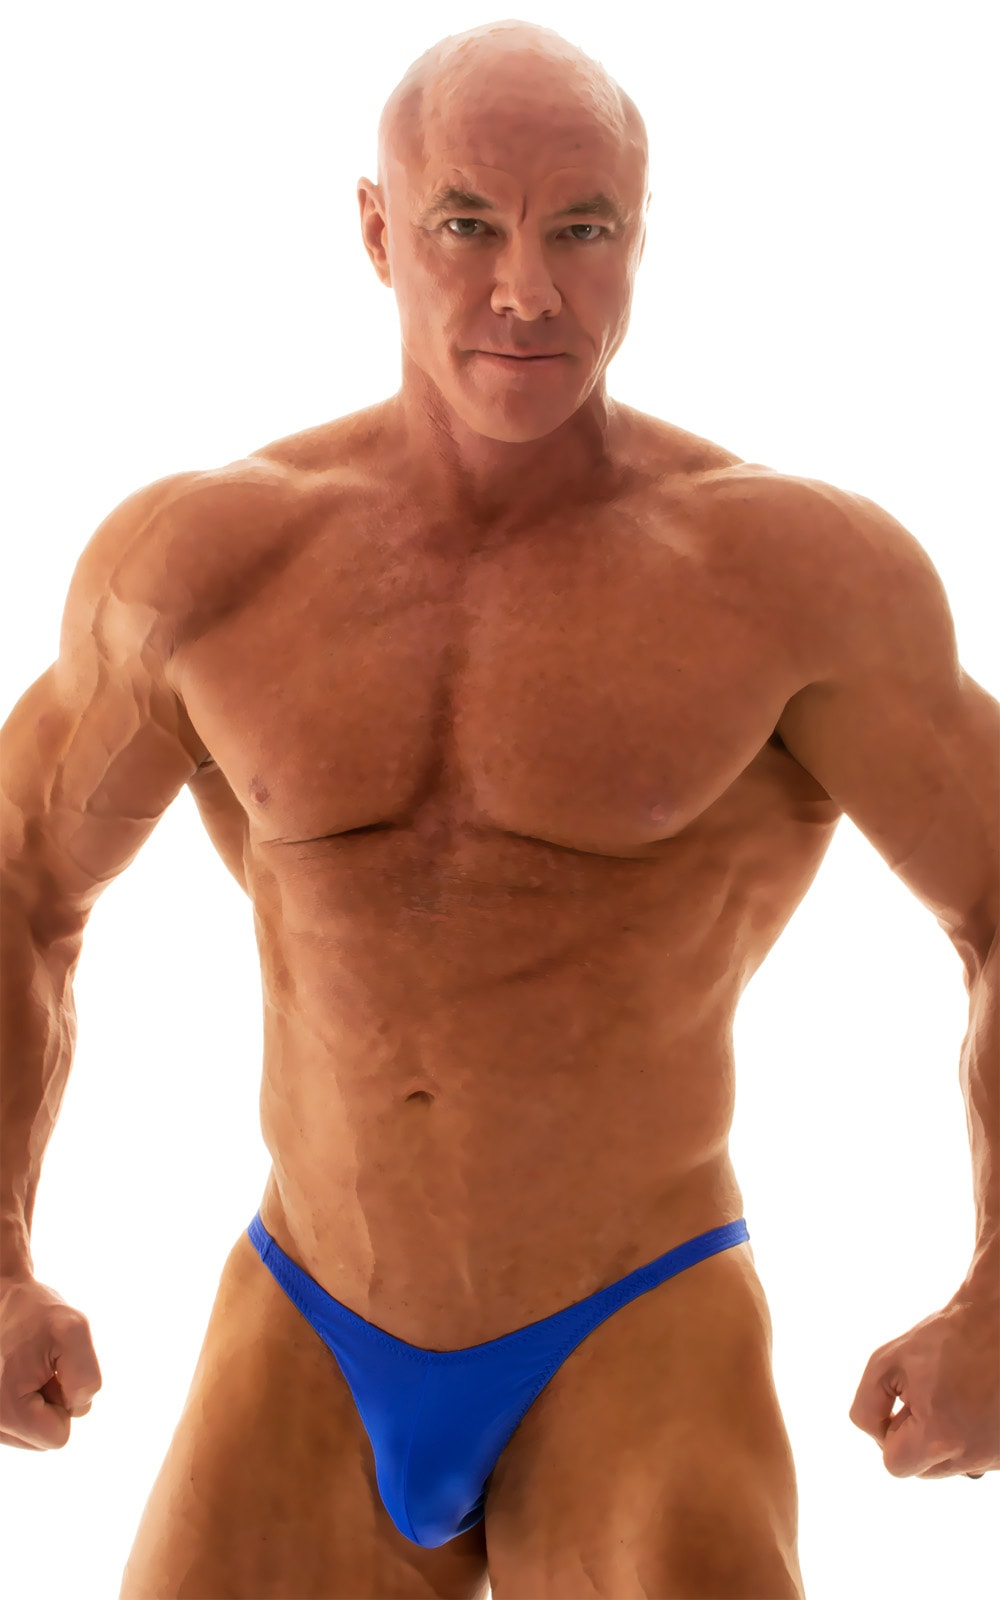 Fitted Pouch - Puckered Back - Posing Suit in Royal Blue 1